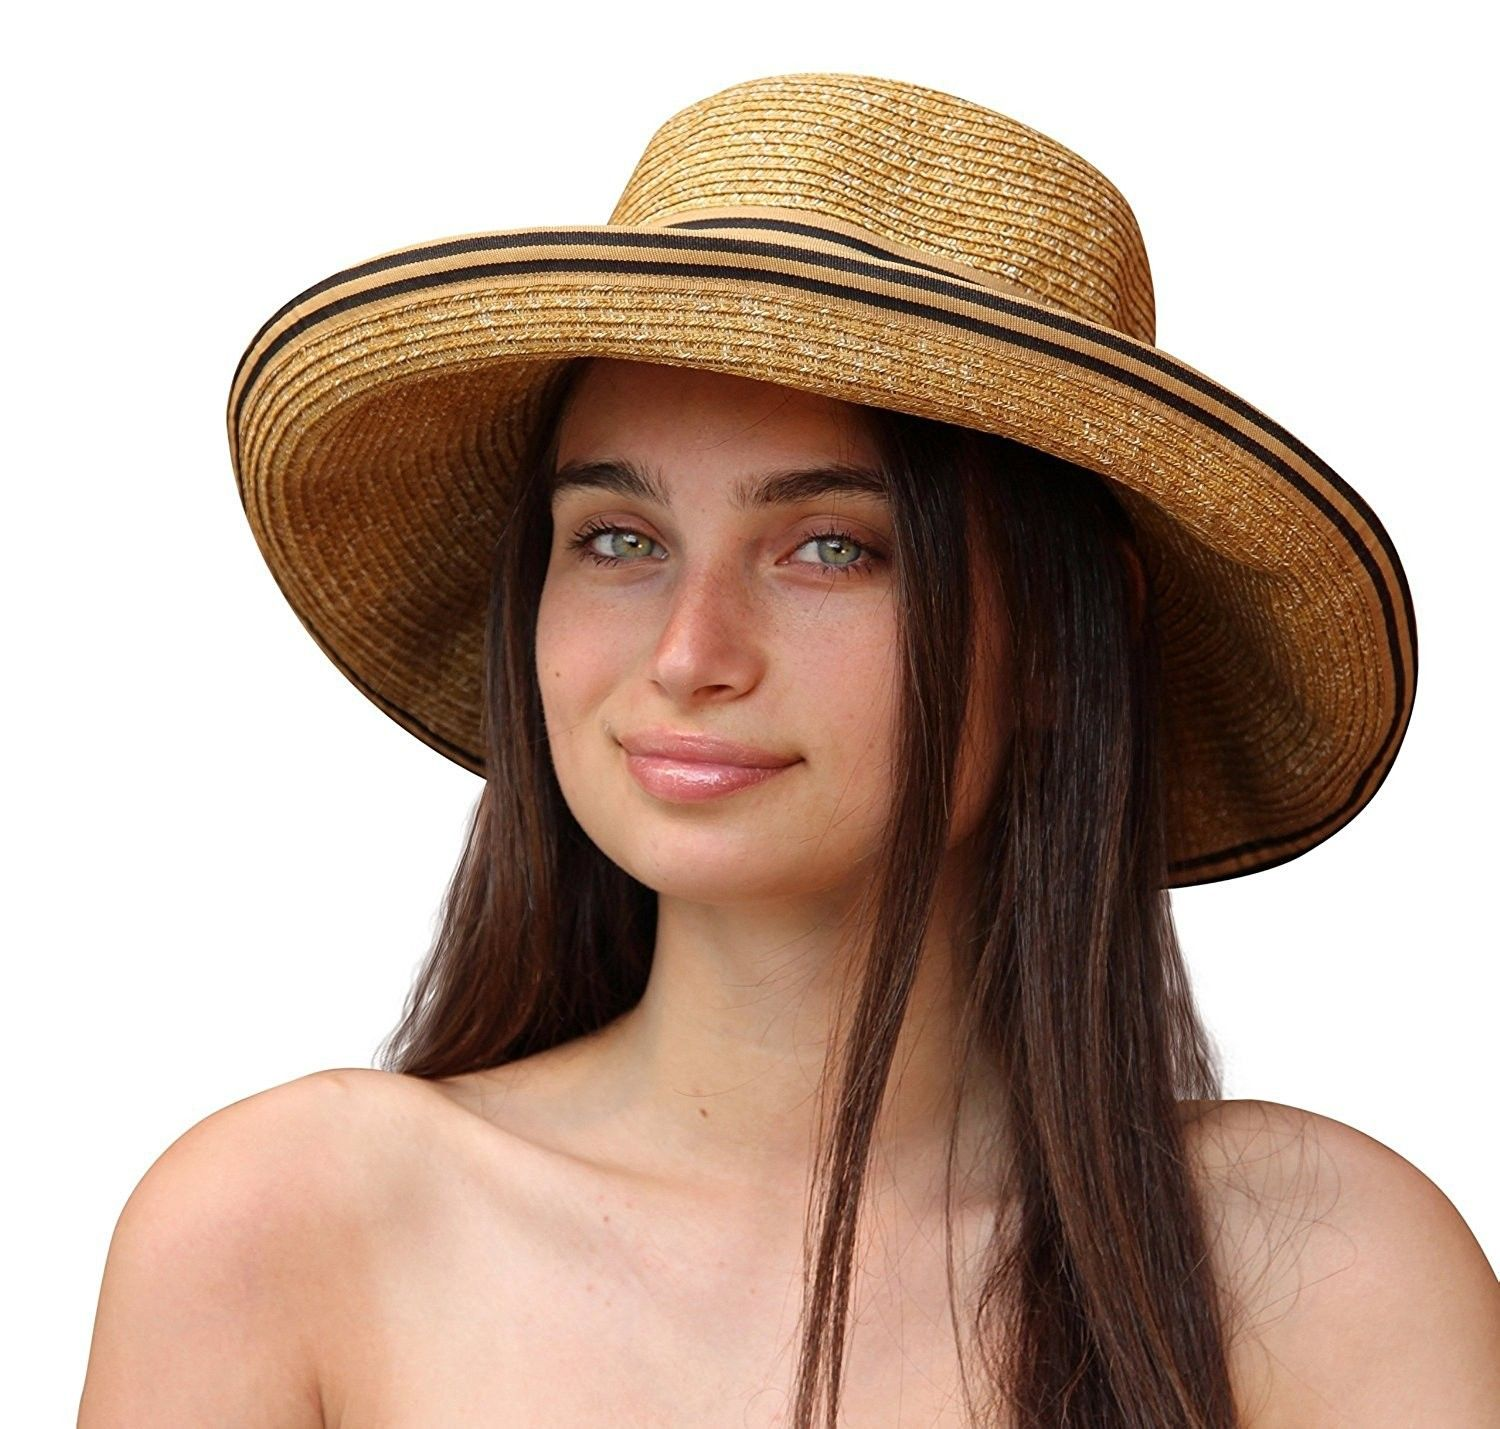 Napa Women S Sun Hat With Uv Protection Natural Cd12gzd0jud Hats For Women Womens Beach Hat Sun Hats For Women